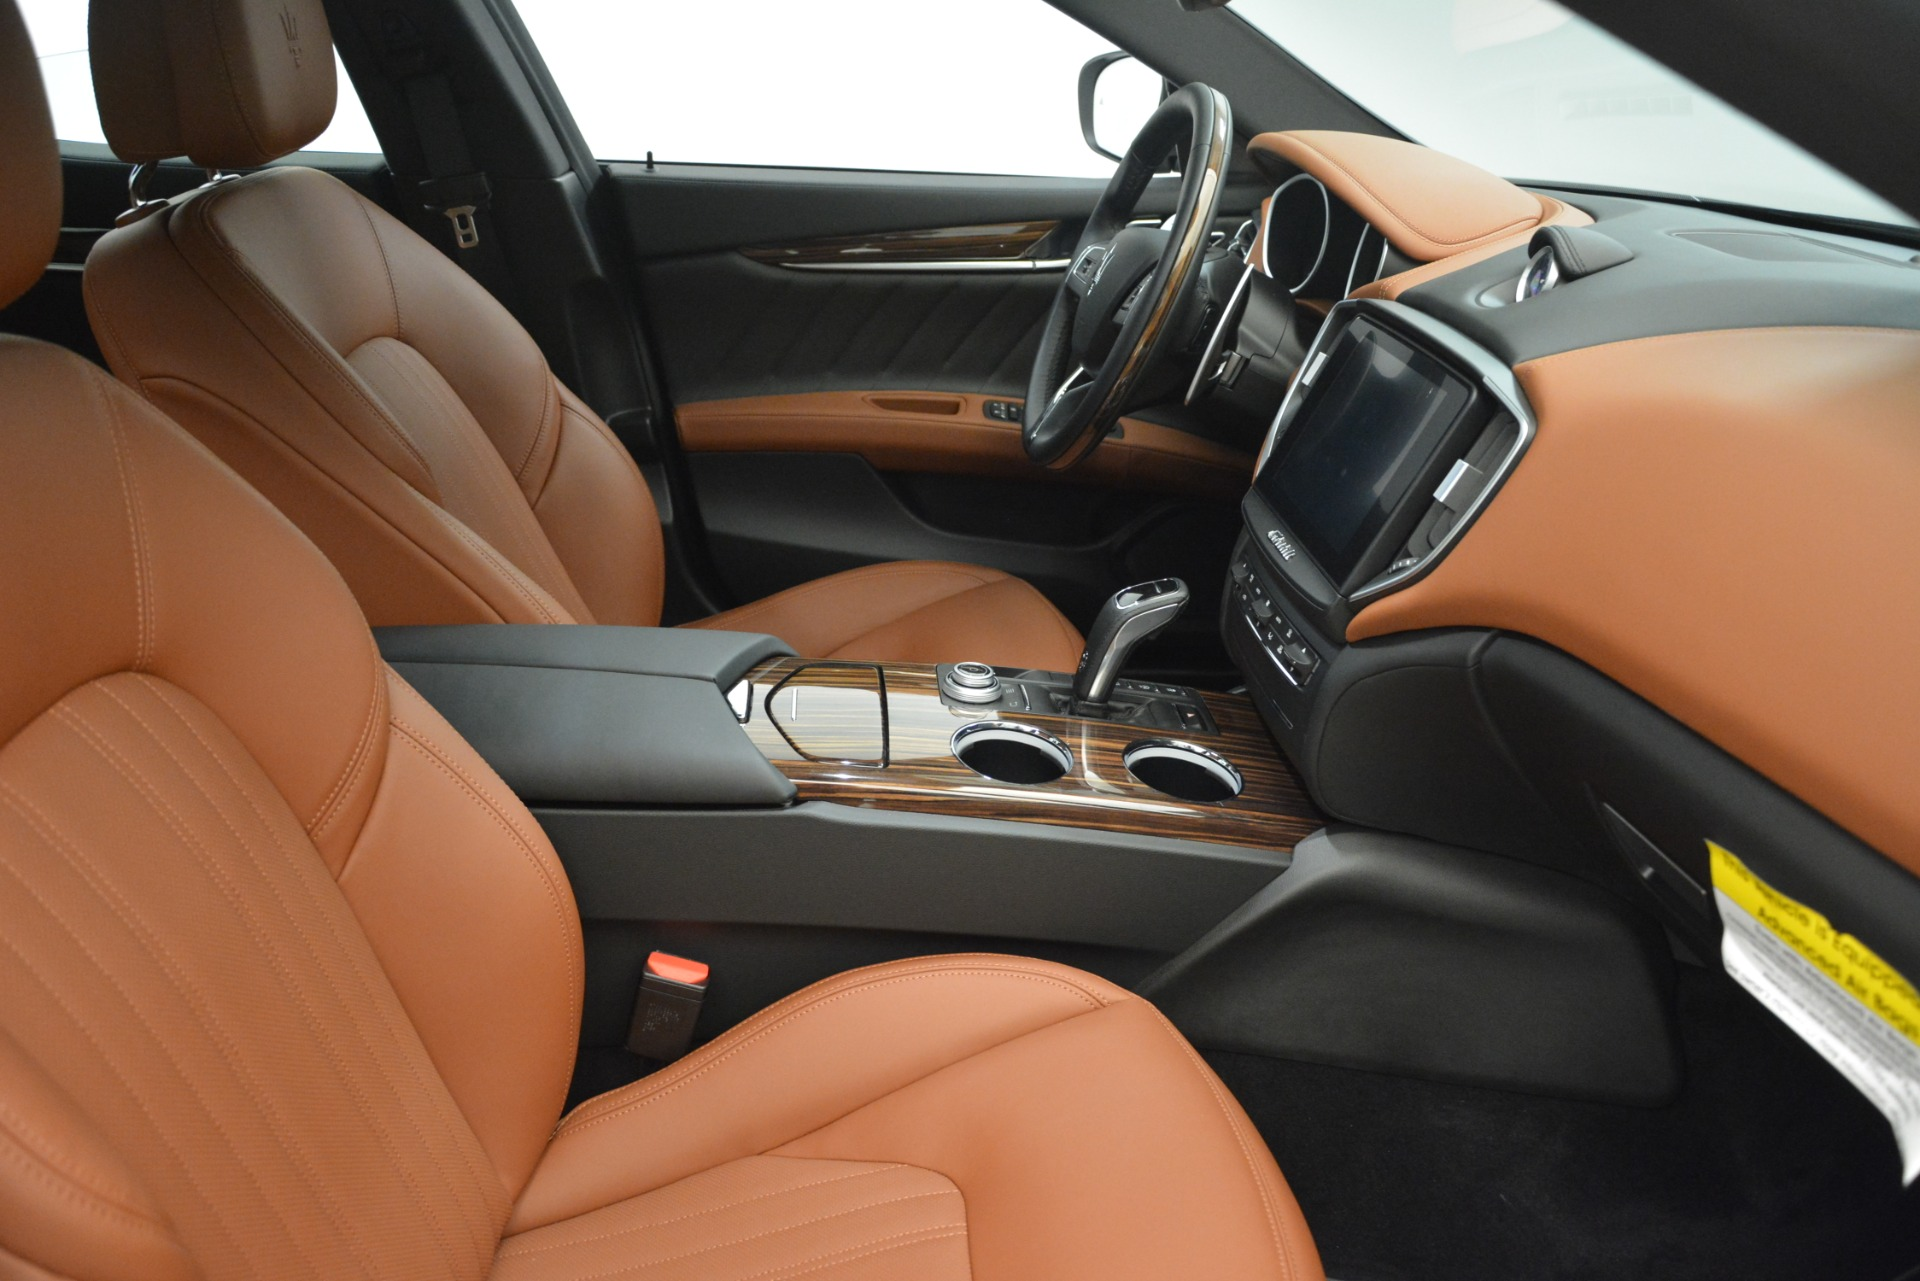 New 2019 Maserati Ghibli S Q4 GranLusso For Sale In Westport, CT 2590_p21